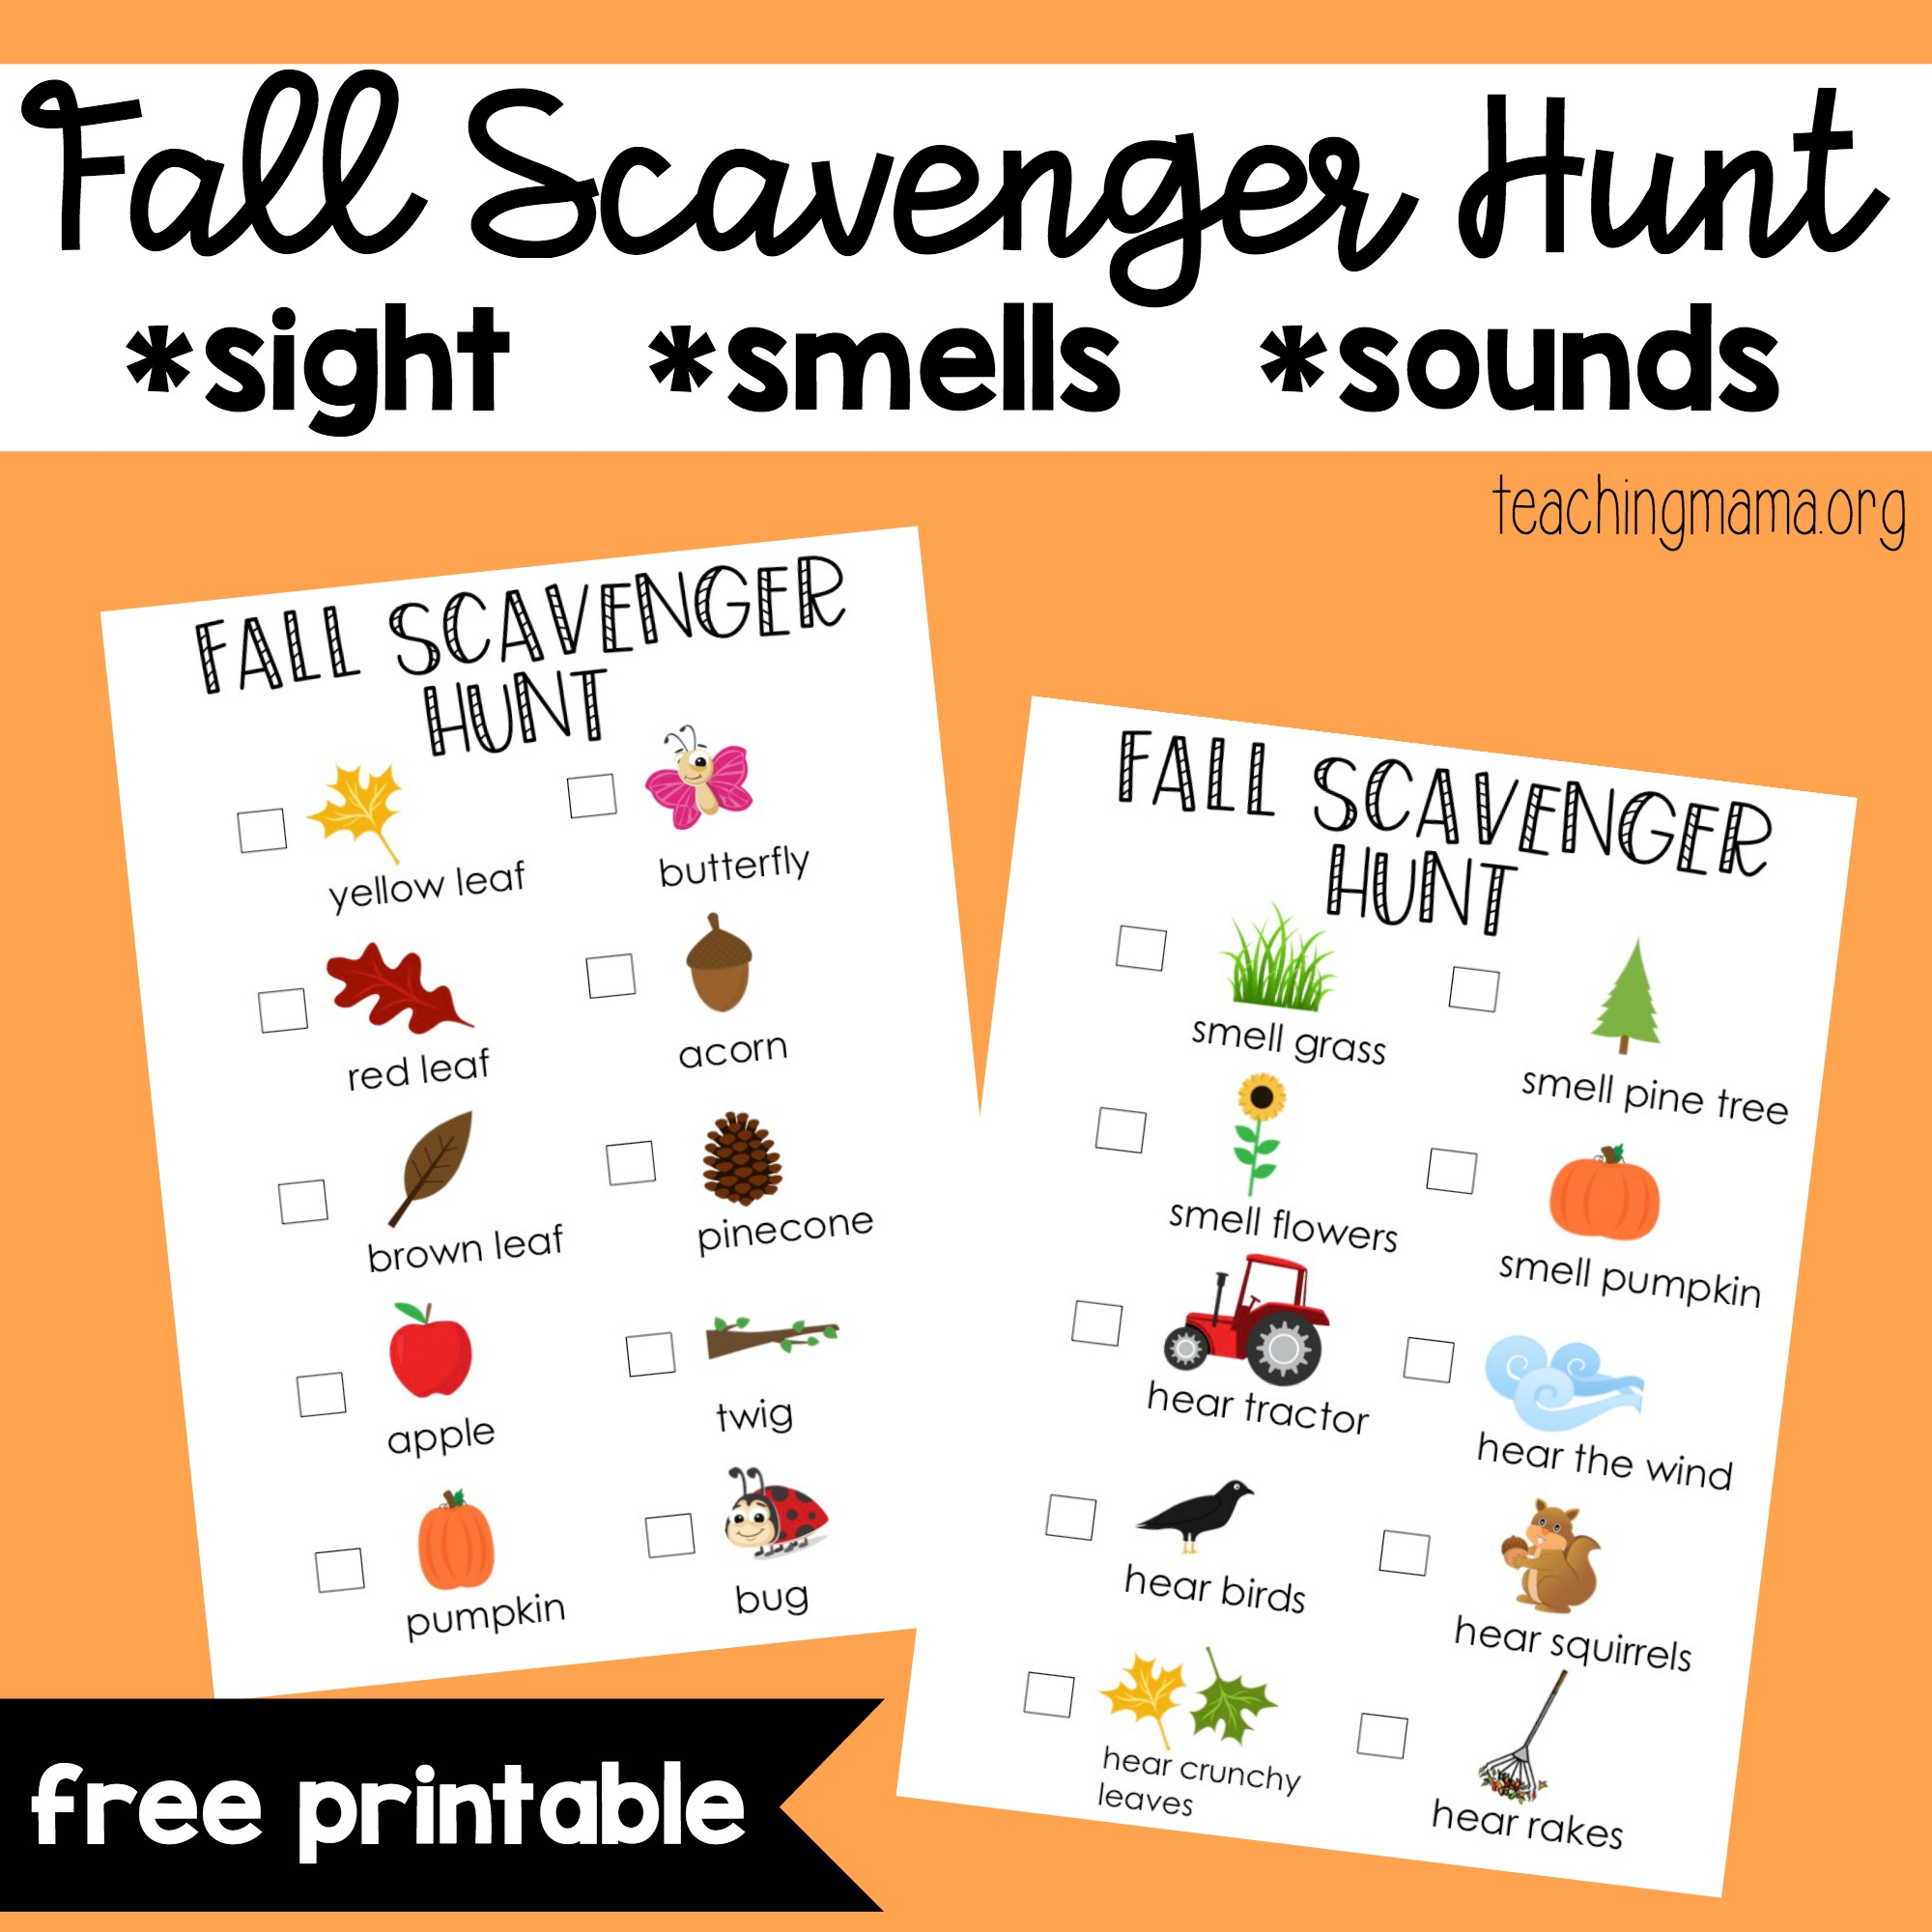 image about Fall Scavenger Hunt Printable named Drop Scavenger Hunt